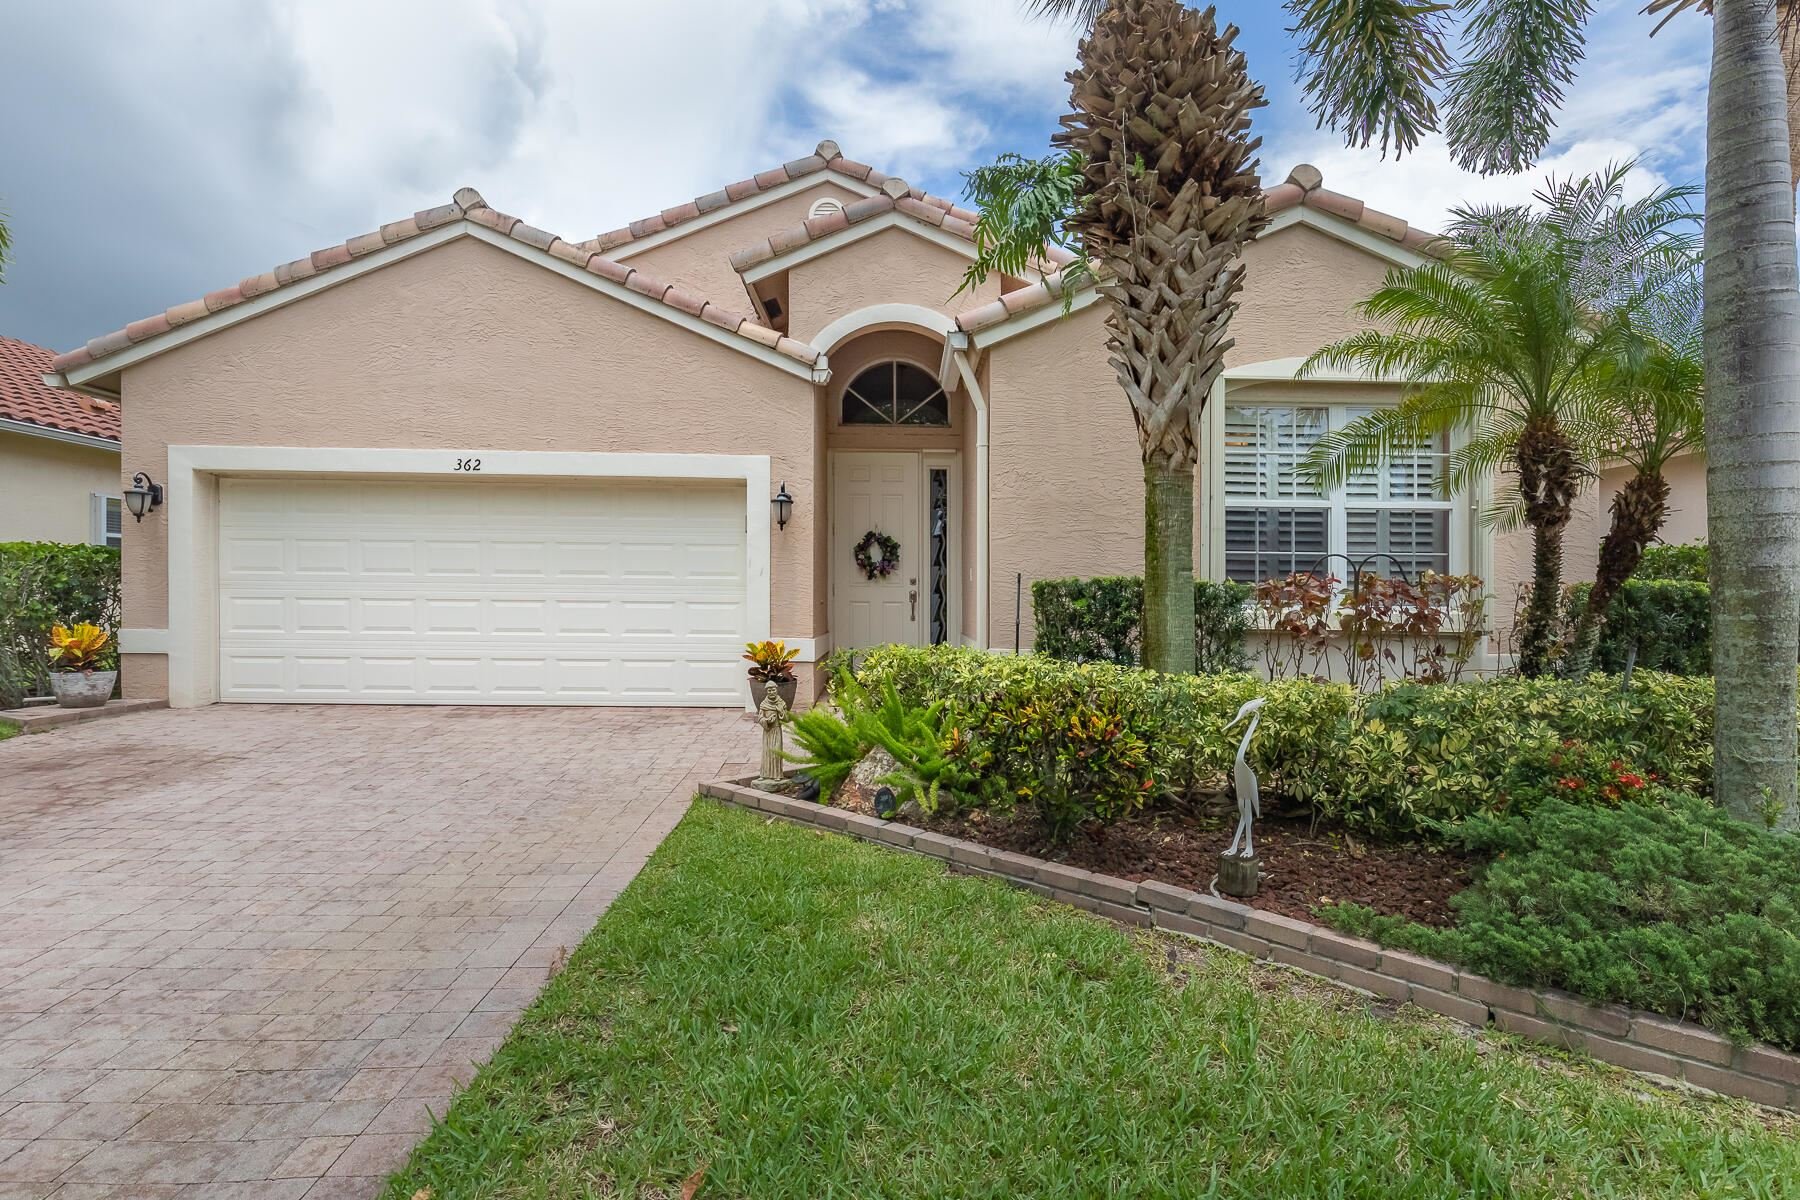 362 NW Sunview Way, Port Saint Lucie, FL 34986 - MLS#: RX-10744476